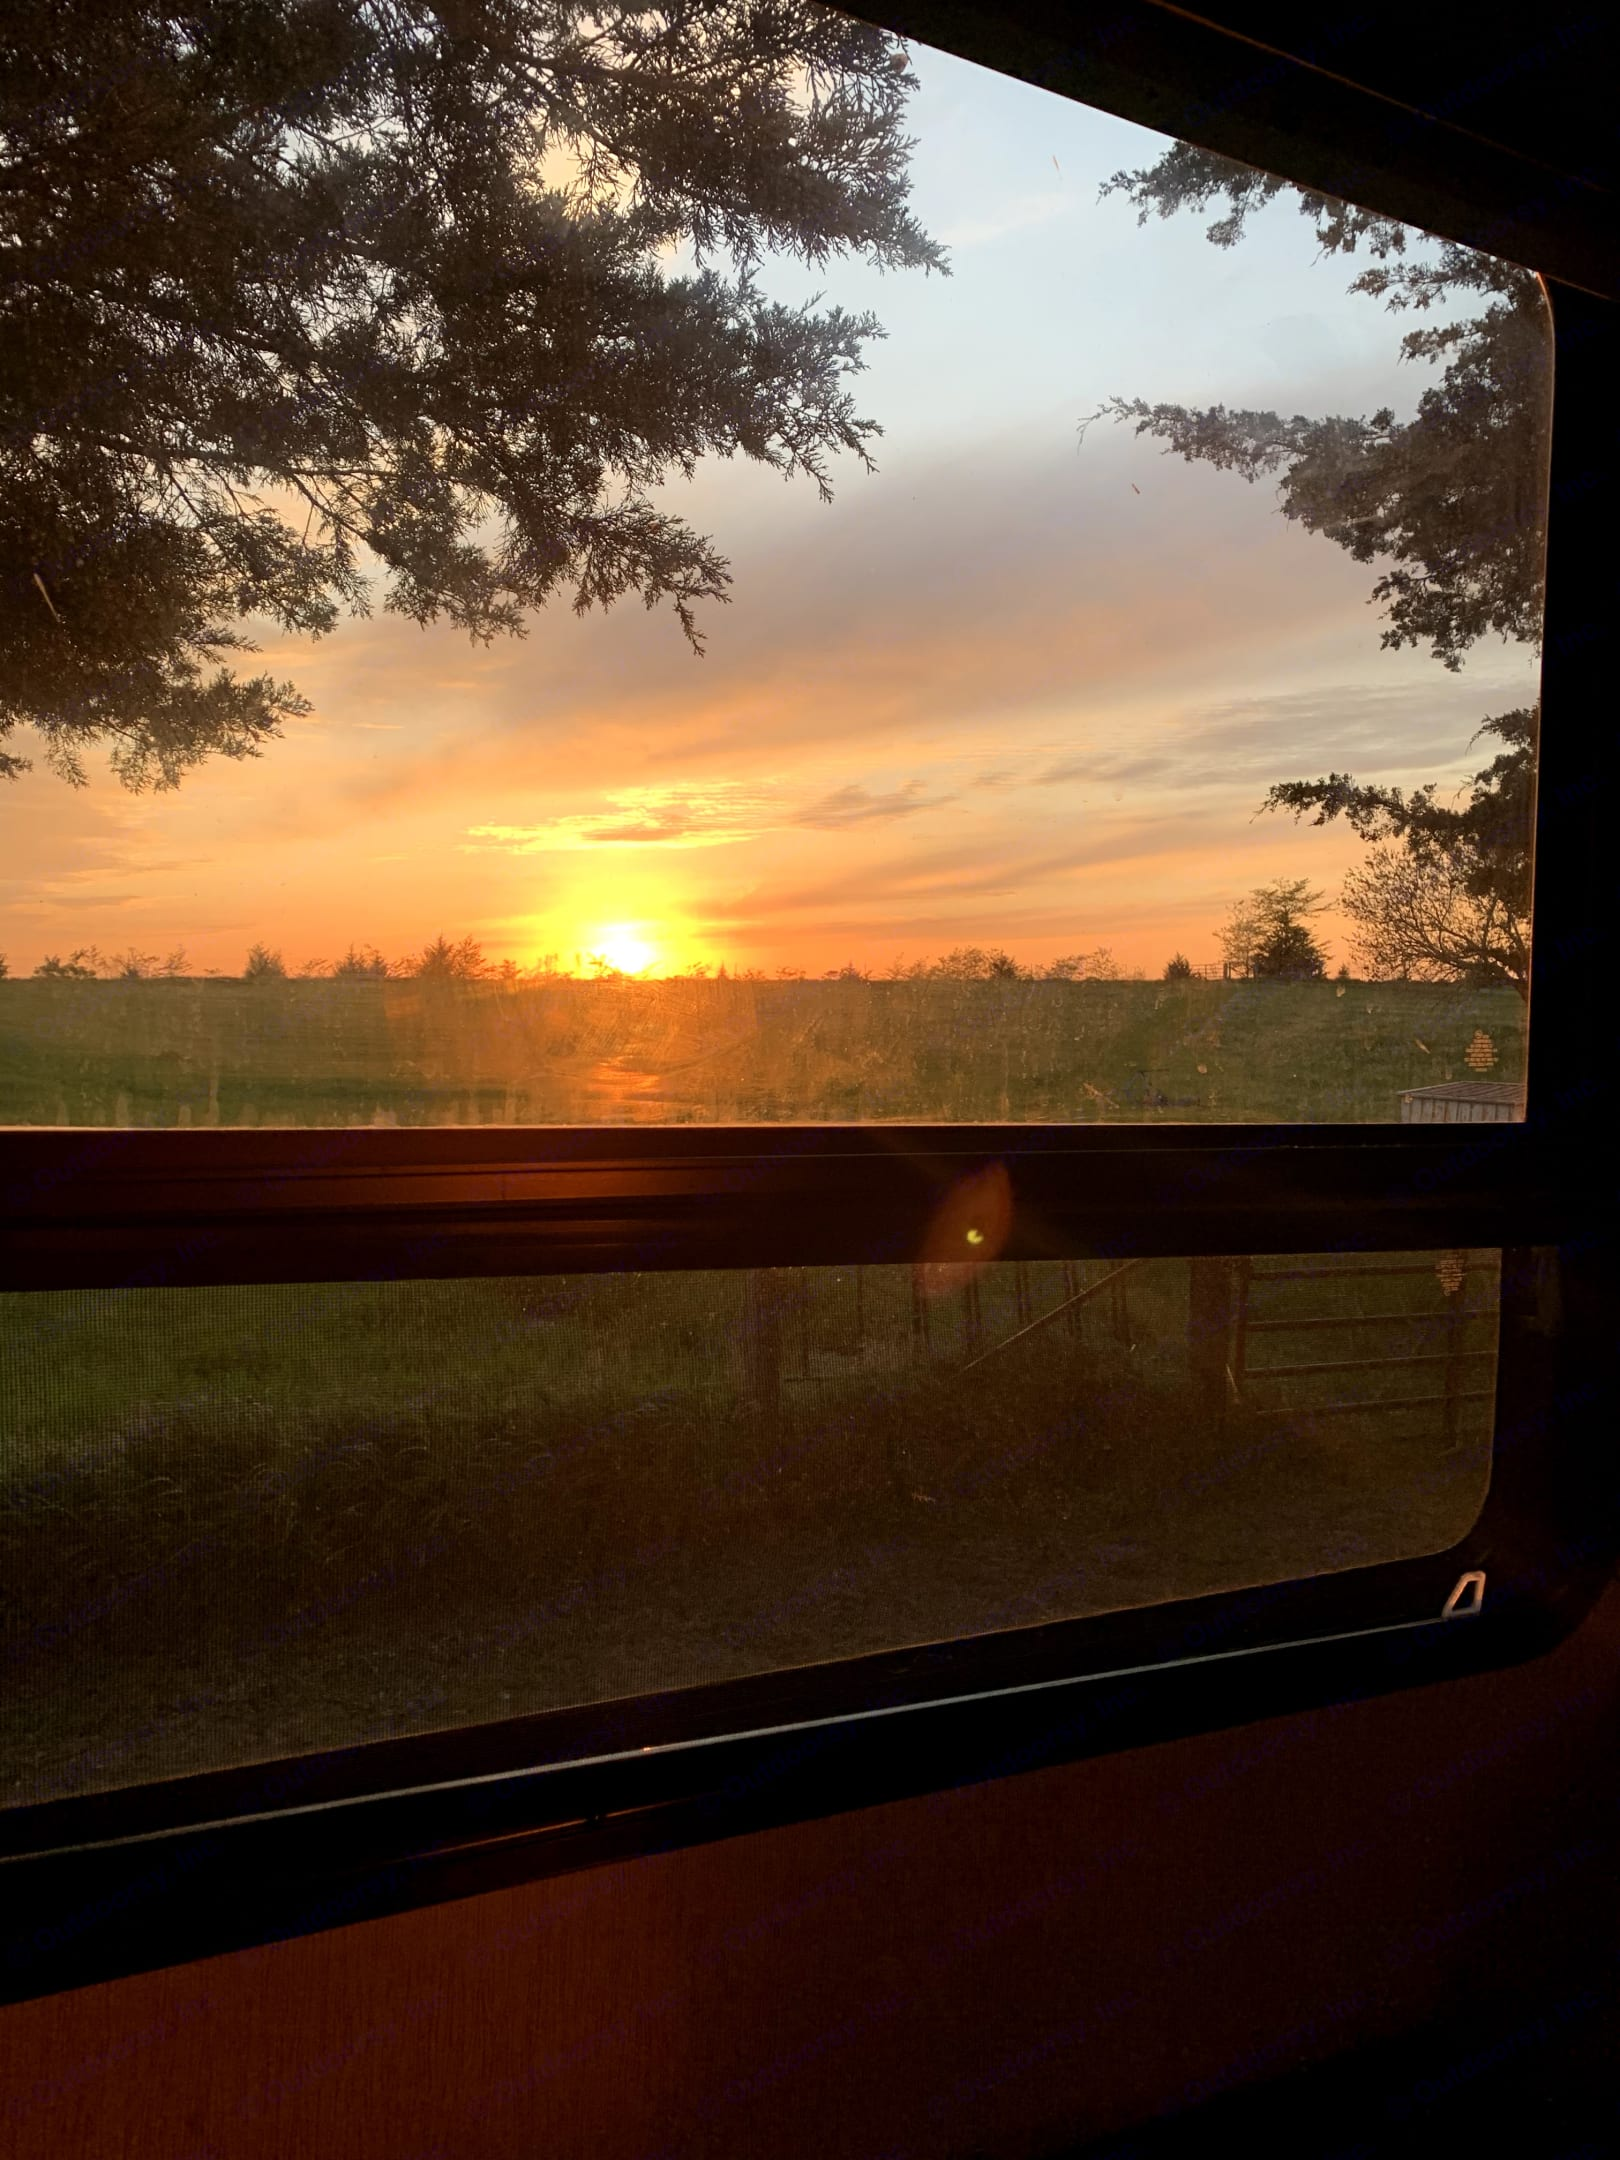 One of the many beautiful sunsets we've caught from this window.. Heartland Big Country 2019